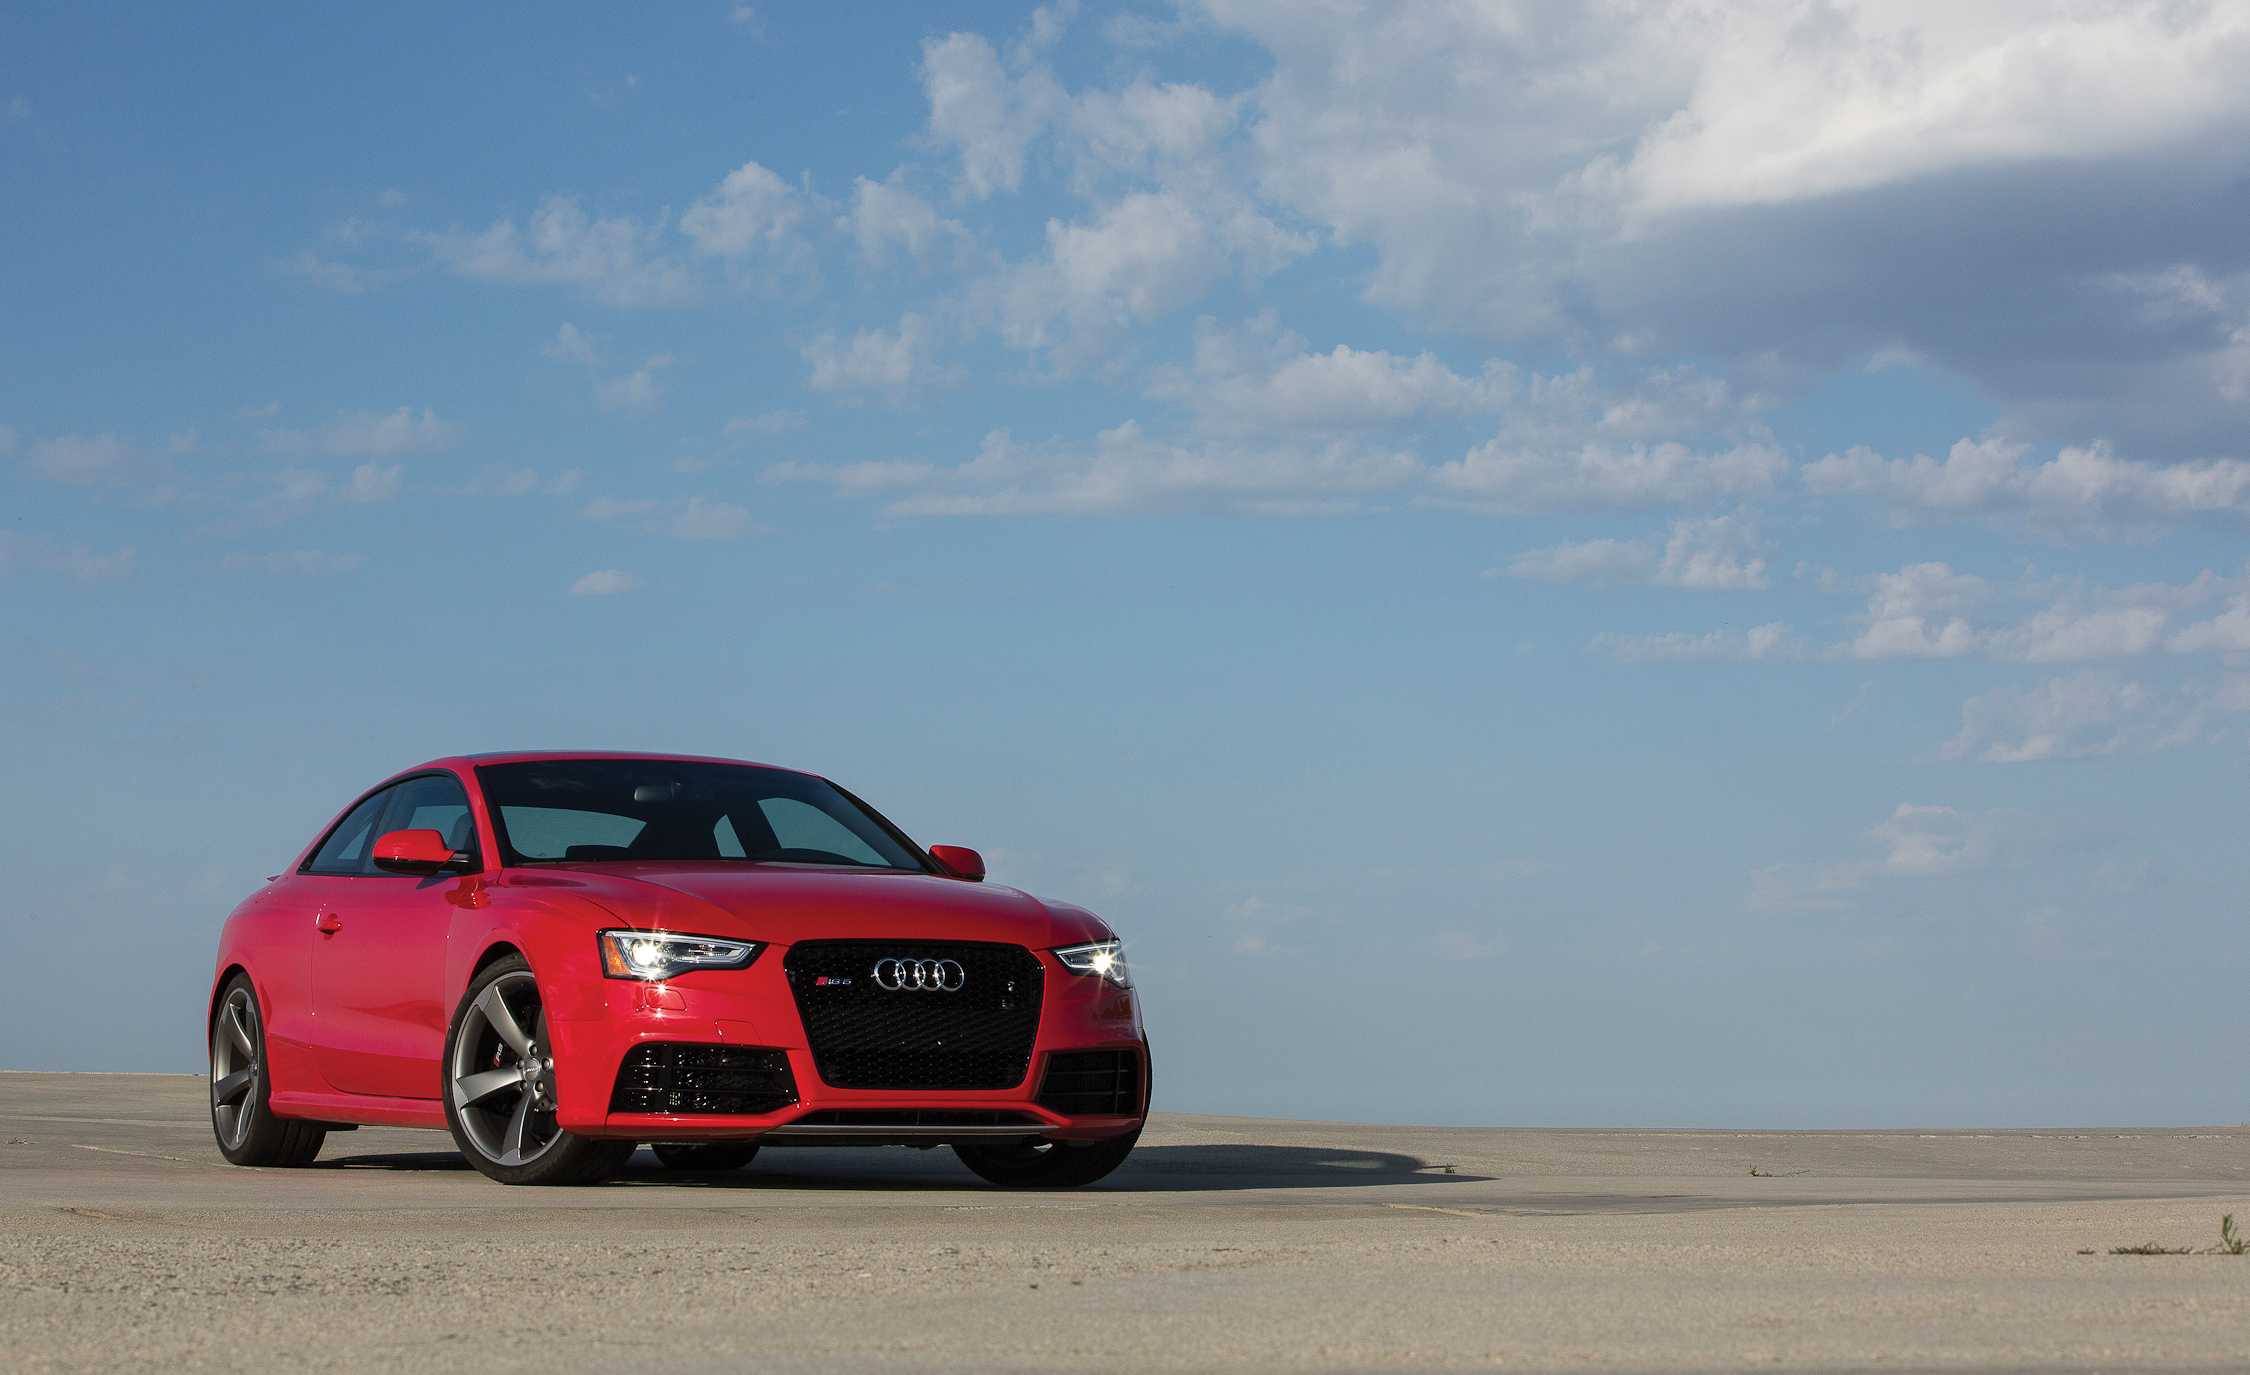 2013 Audi RS 5 Exterior (View 24 of 41)